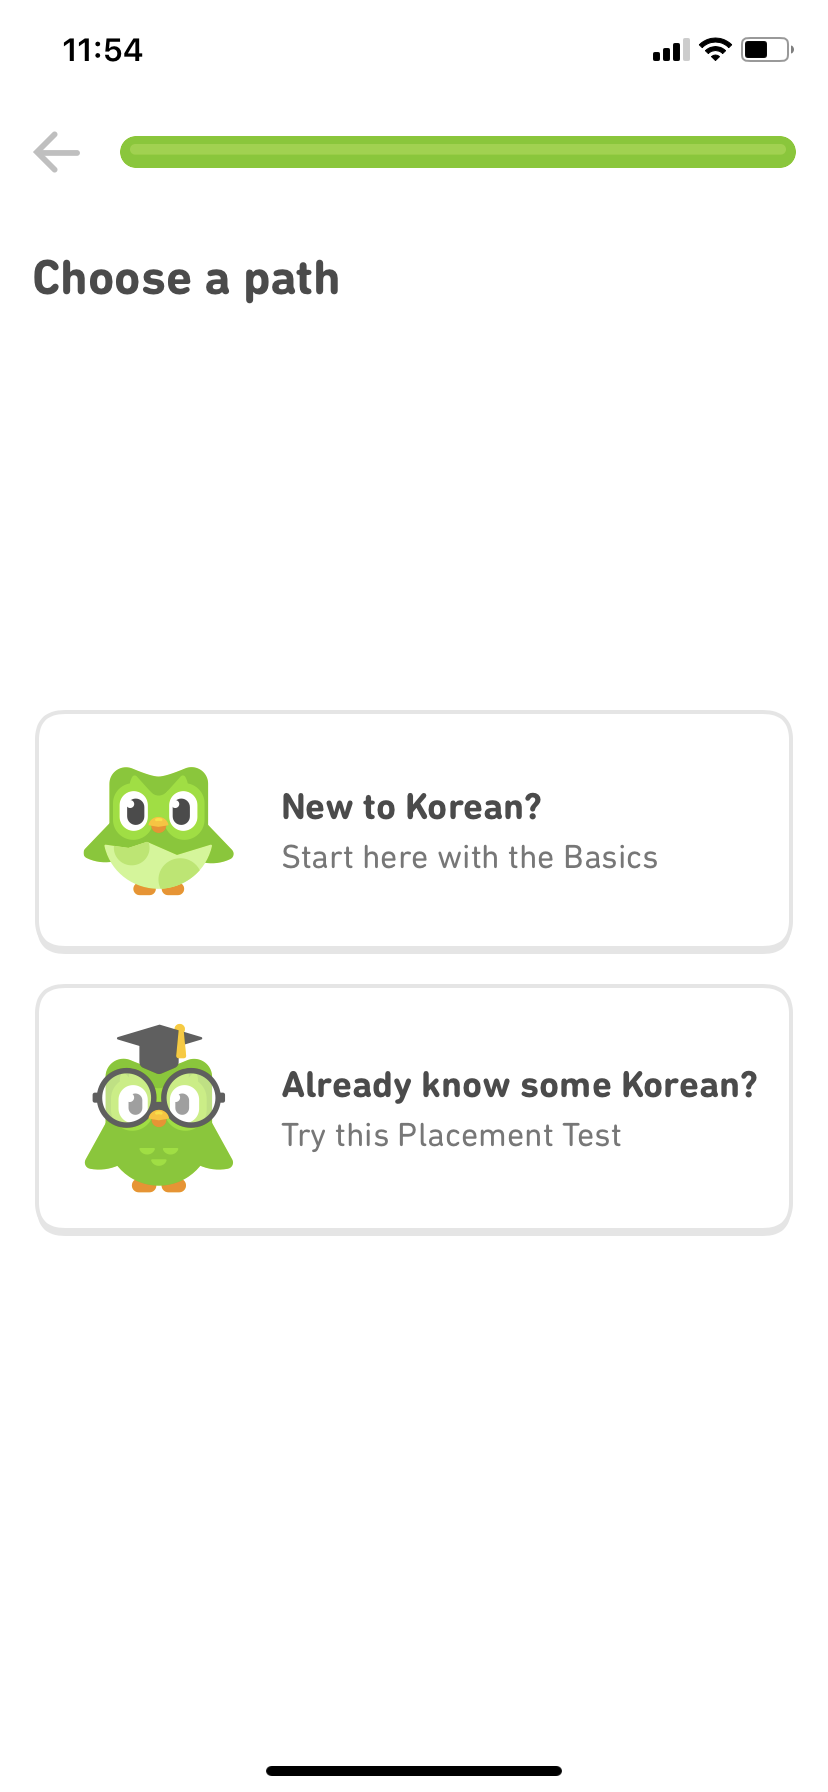 duolingo onboarding choose a path mobile screen that asks users to select their experience level